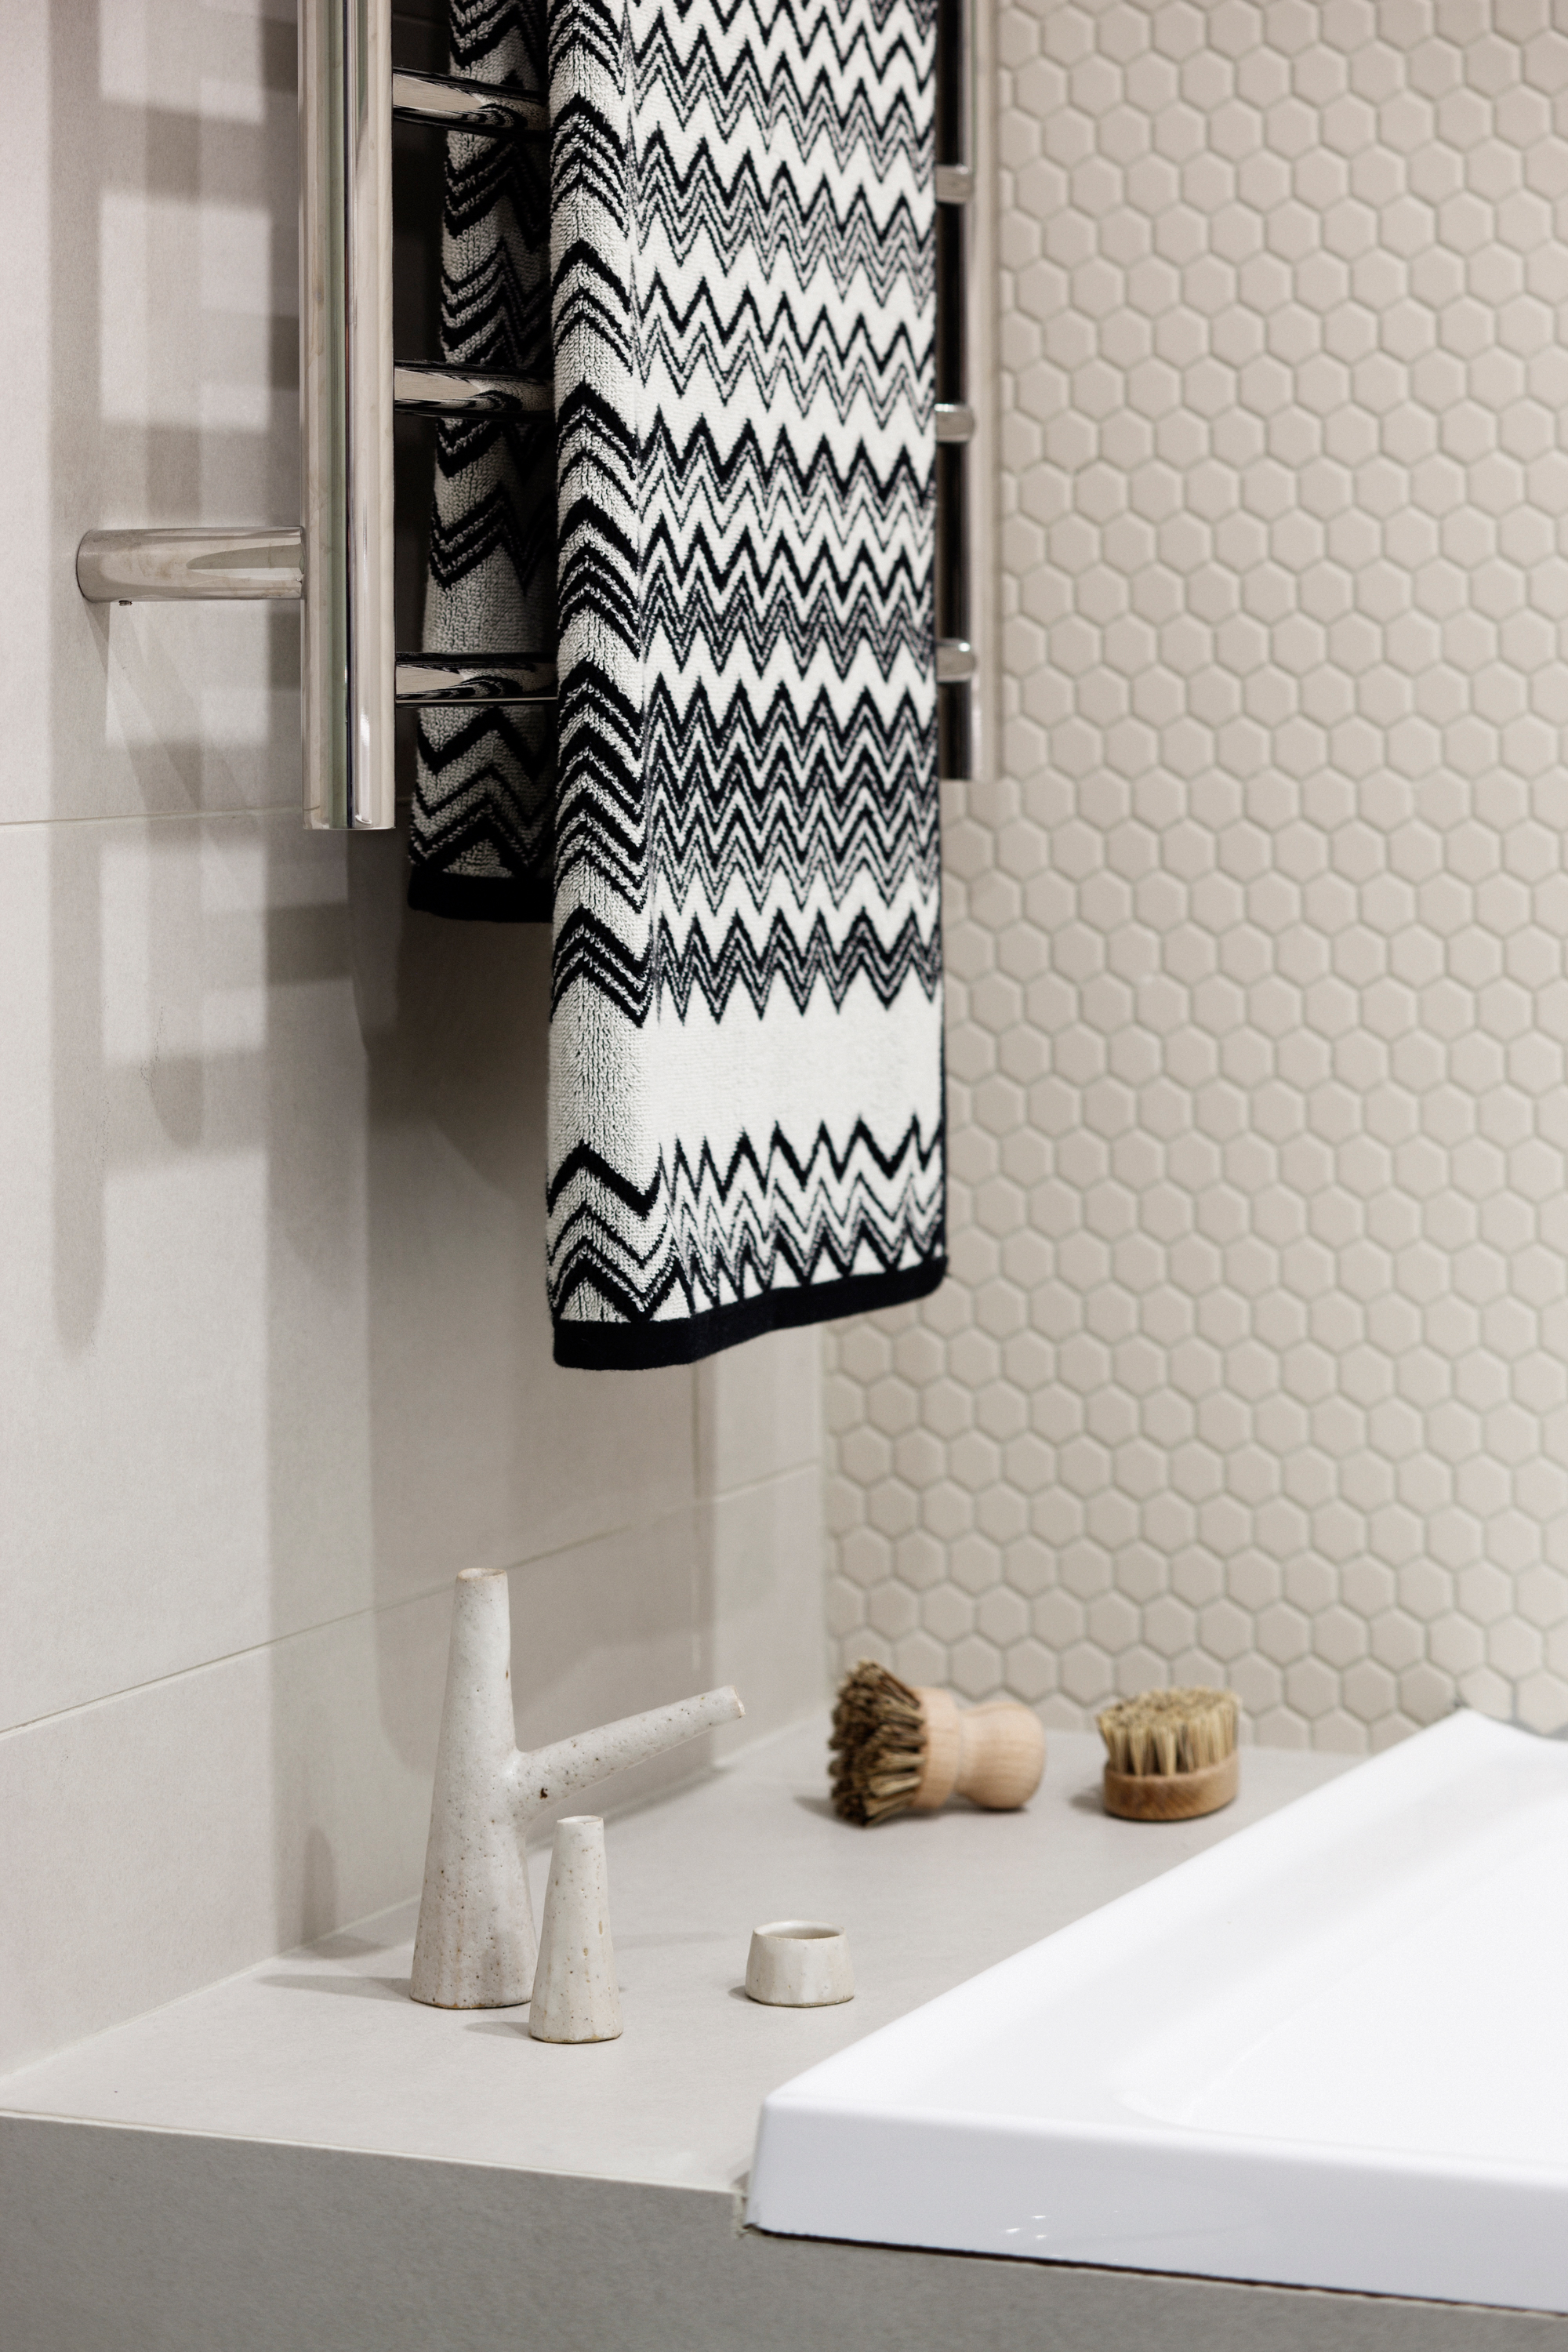 hexagon-mosaic-tiles-and-missoni-towel-in-waverley-bathroom-buy-kate-connors-interiors